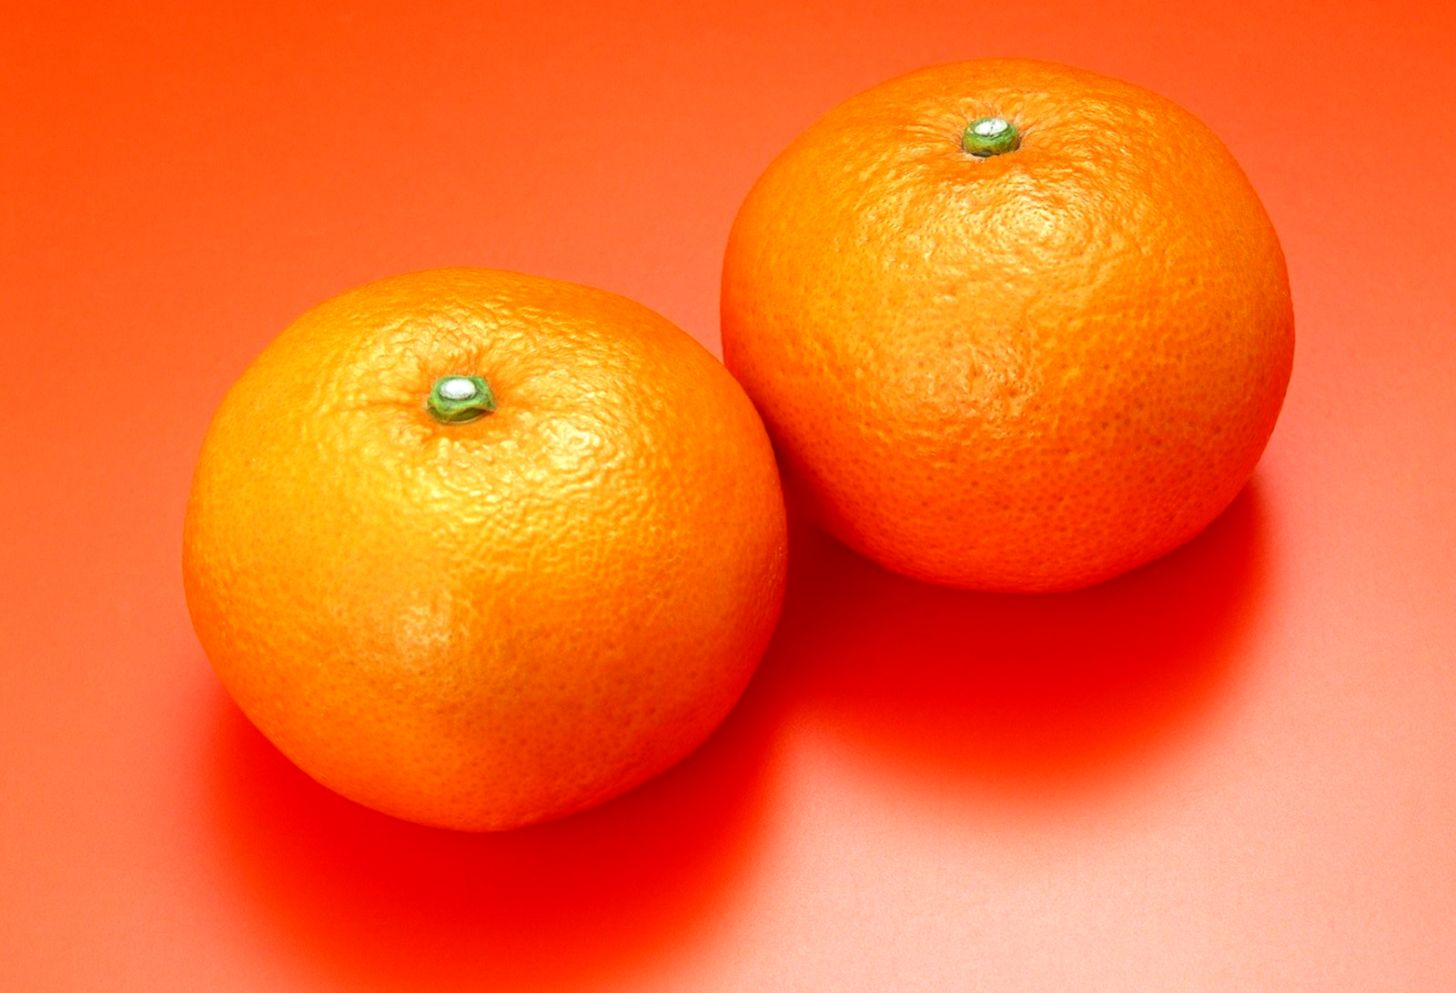 Miscellaneous Oranges Tangerine Fruits Orange Mandarin Images HD